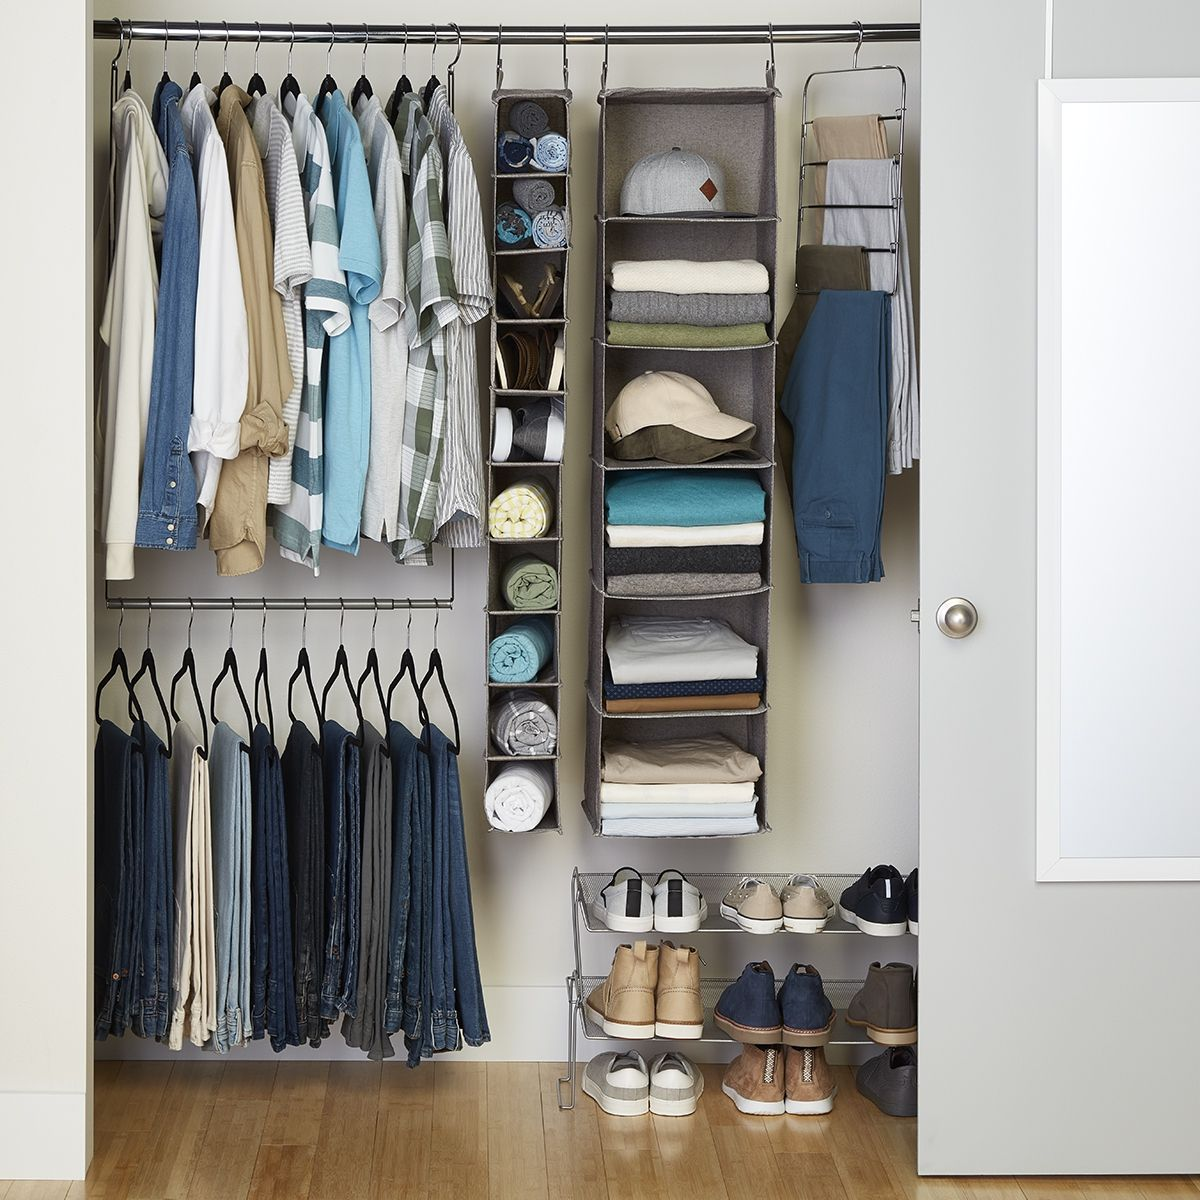 Small Closet No Problem Hanging Closet Organizers Are A Great Way To Make The Most Of The Vertical Space Hanging Closet Storage Hanging Closet College Closet